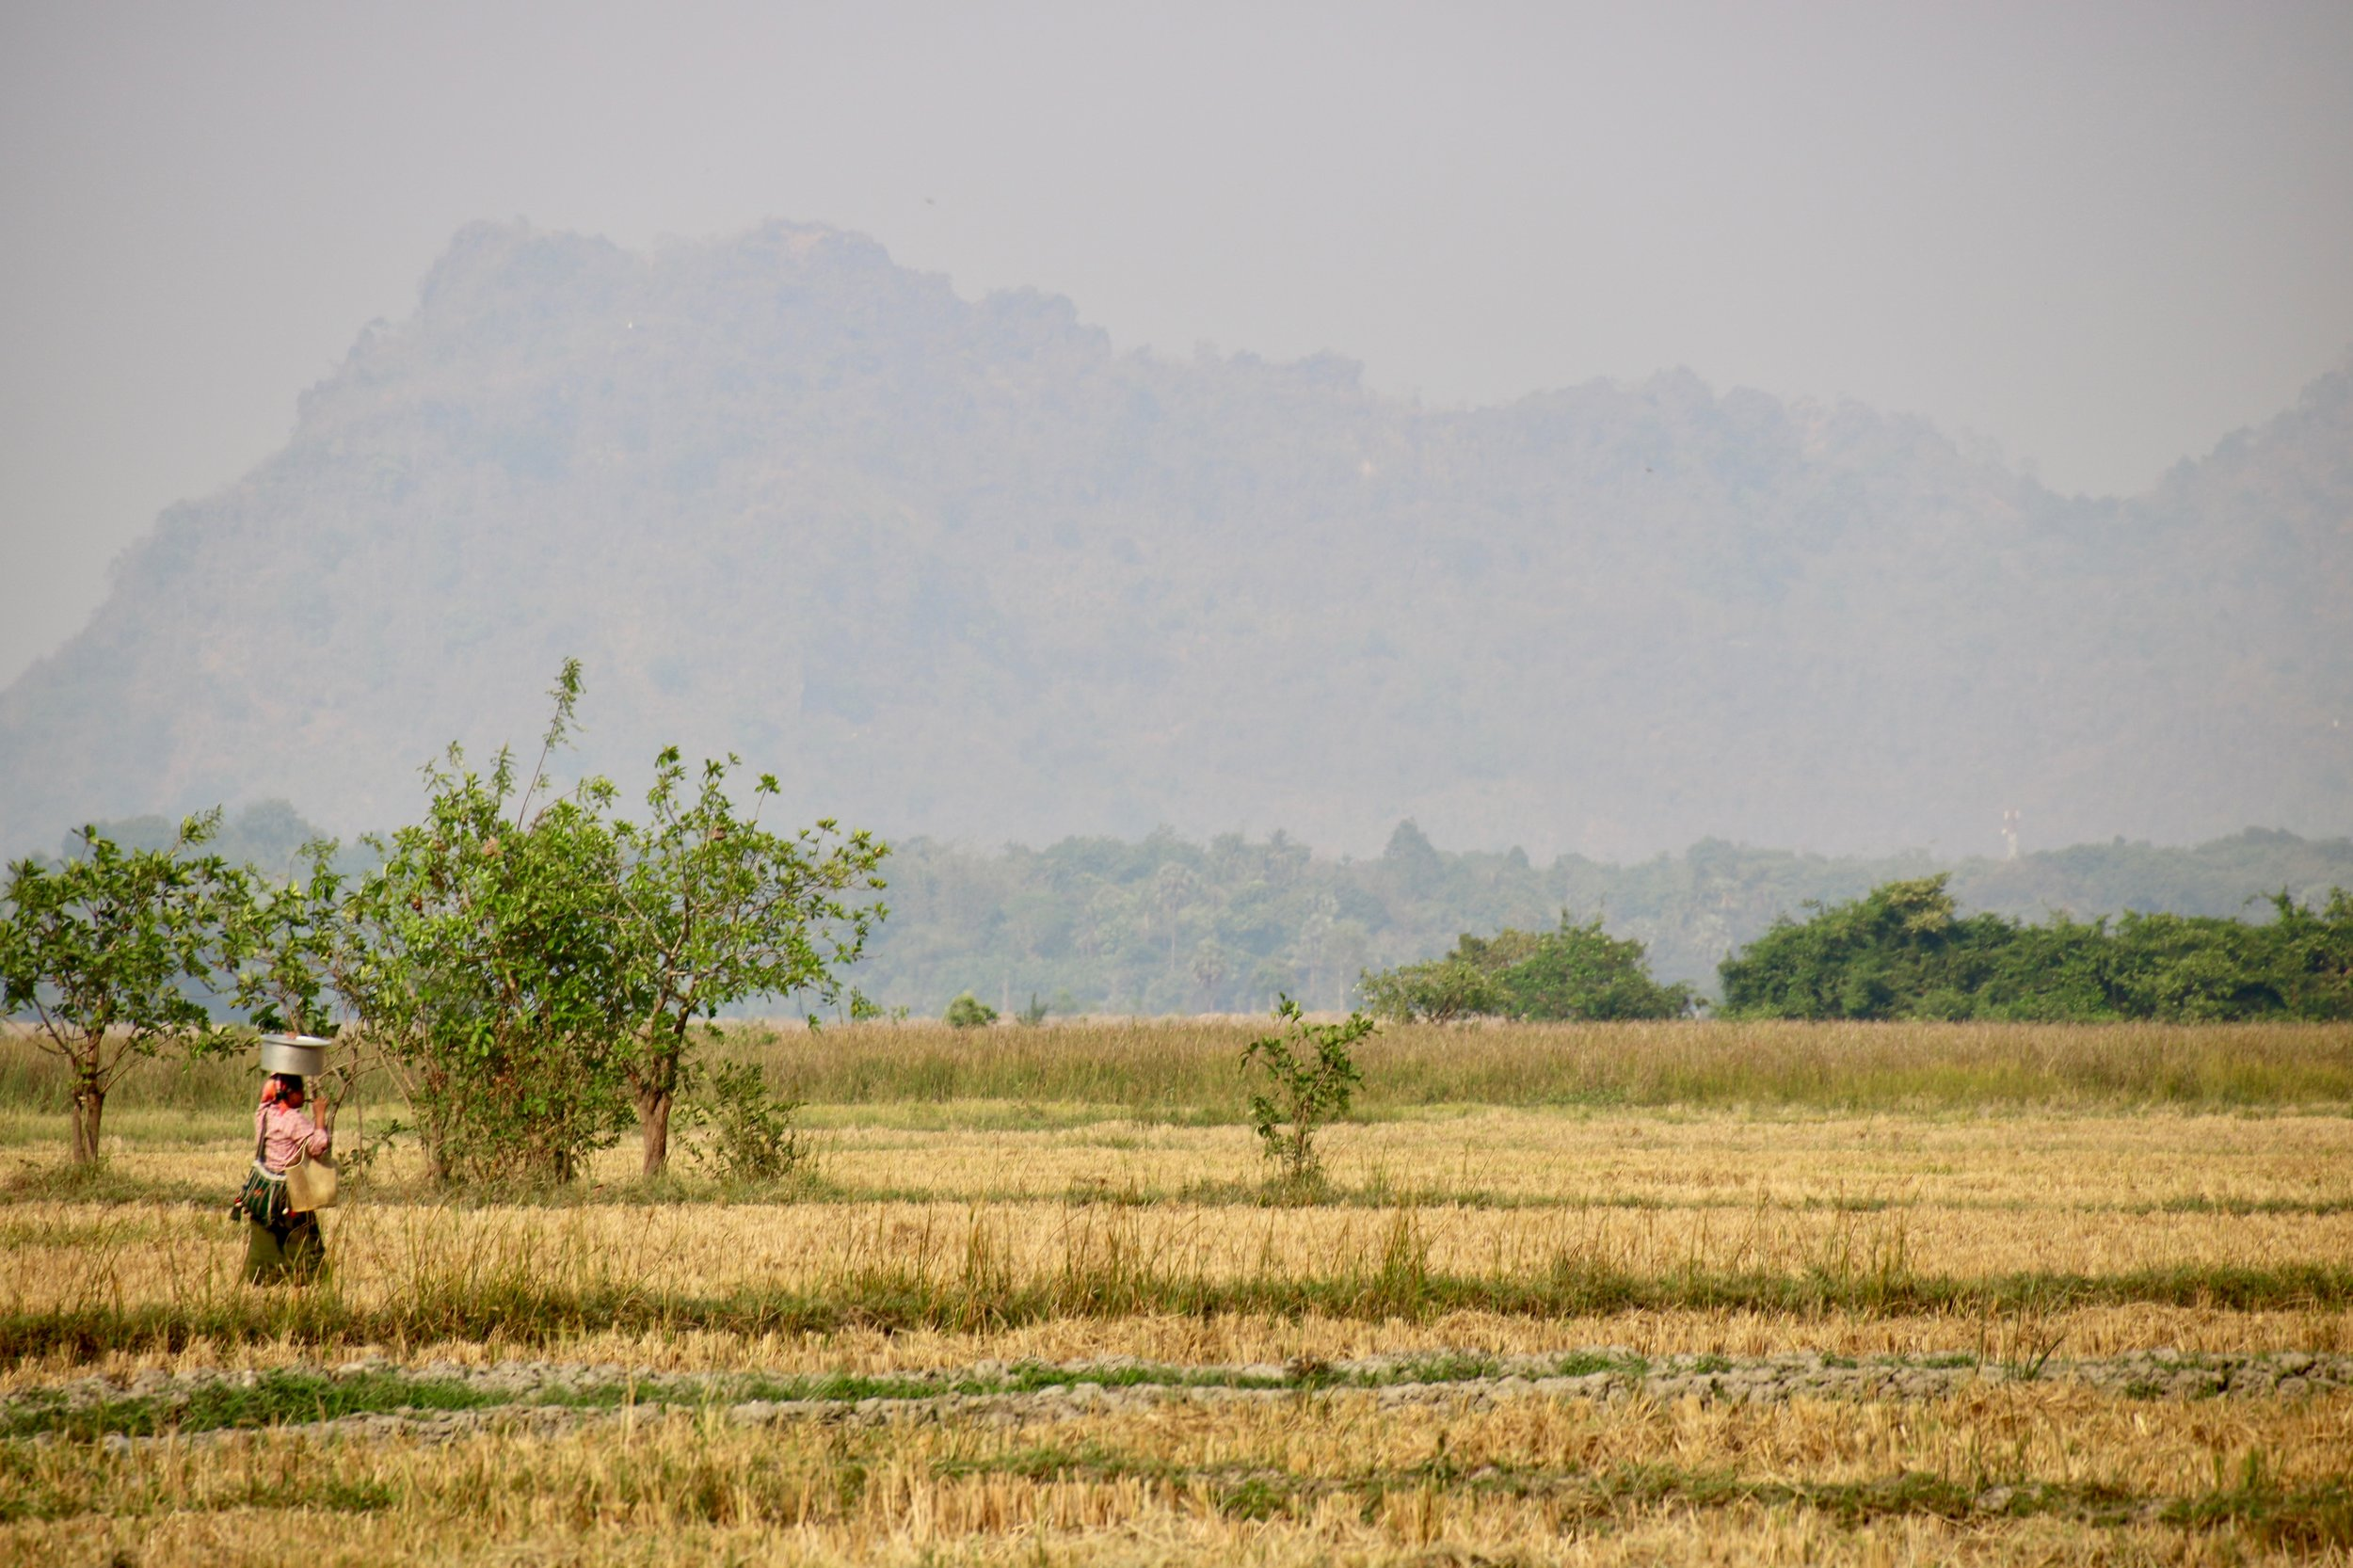 Our definitive guide to Hpa-an, Myanmar. Local woman in field